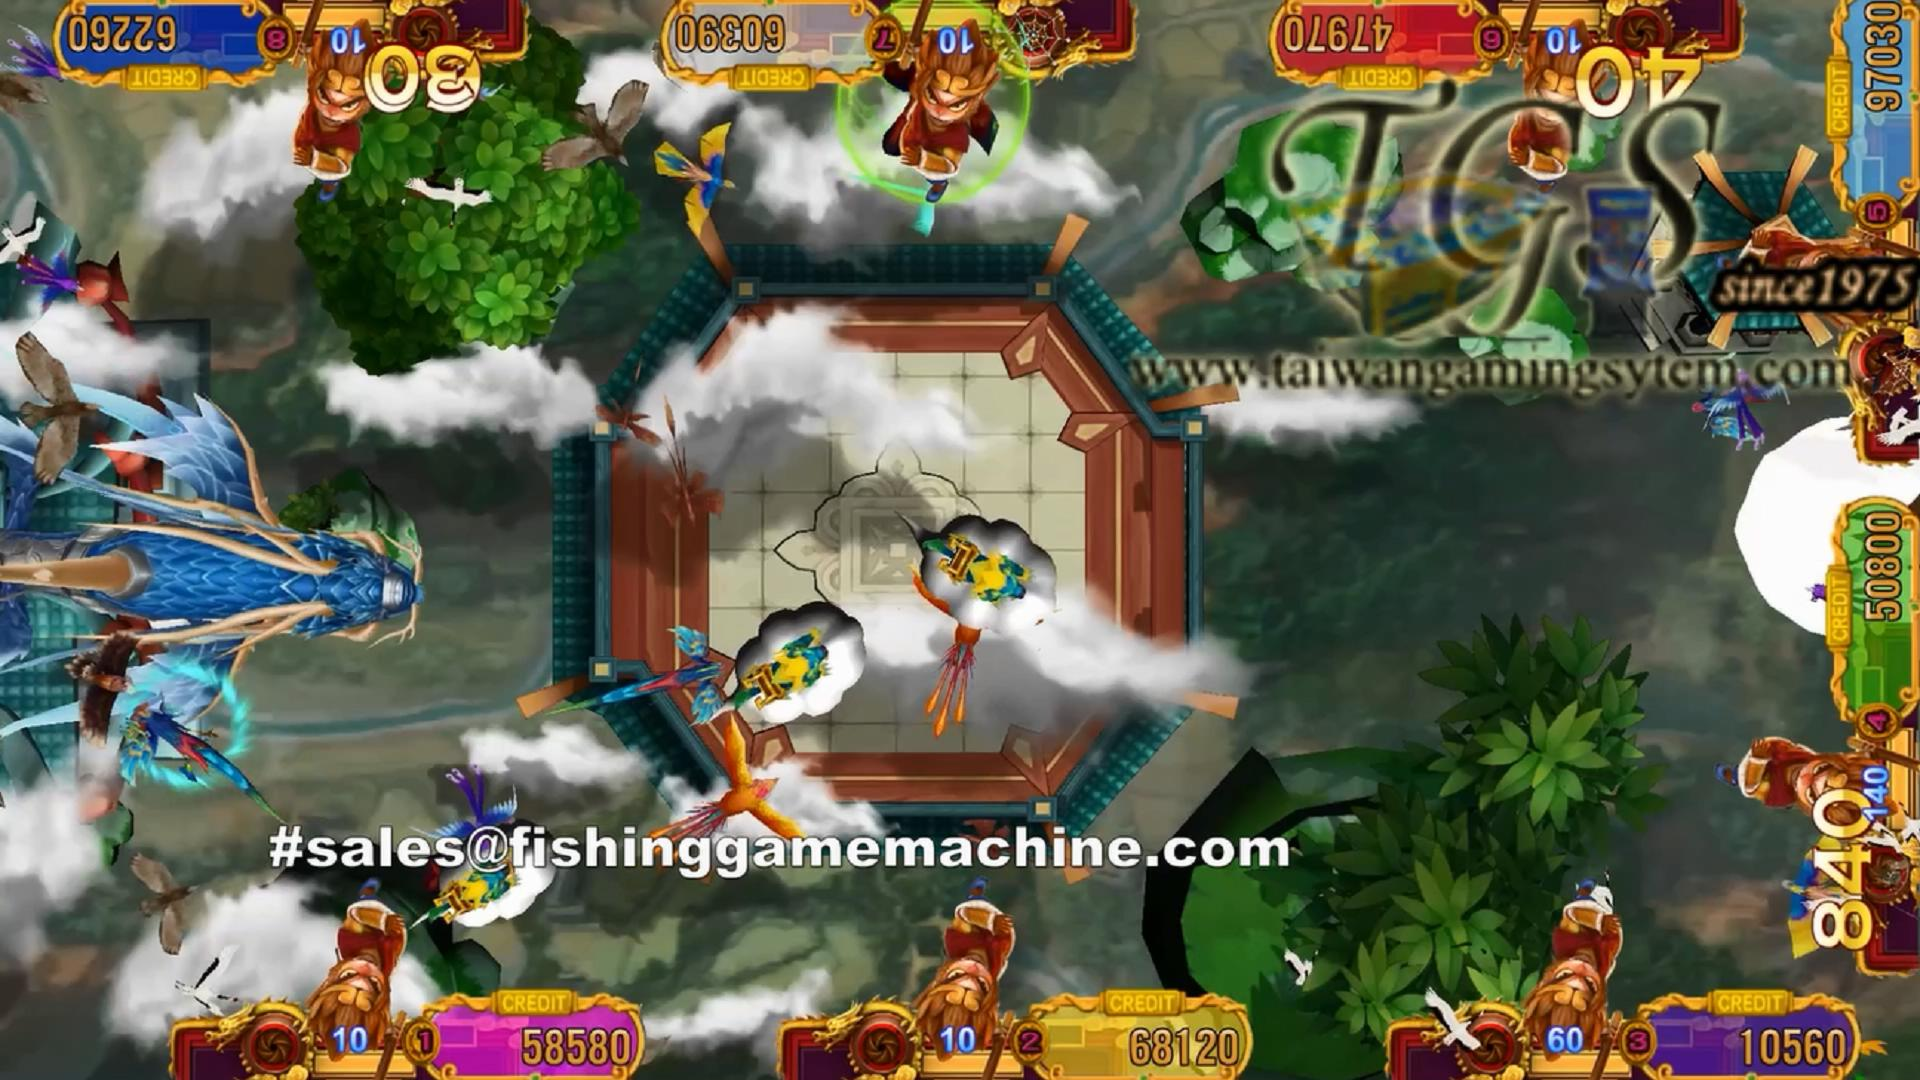 Fishing Game,Fishing Game Machine Supplier,3D KONG Fishing Arcade Table Game Machine,Prime Minster Turtel Revenge 3D Fishing Game,Kong Fishing Game Machine,2018 Newest 2 IN 1 Jackpot Fishing Game,Kong,Kong Fishing Game Machine,Kong Fishing Table Game Machine,Kong Jackpot Fishing Game Machine,Jackpot Fishing Game Machine,Fishing Game Machine,Fishing Table Game Machine,Dragon King Fishing Game Machine,WuKong Fishing Game Machine,Coin operated Fishing Game Machine,Game Machine,Gaming Machine,Gambling Machine,Electrical Slot Gaming Machine,Amusement Park Game Euipment,Family Entertainment,Entertainment Game Machine,Arcade Game Machine